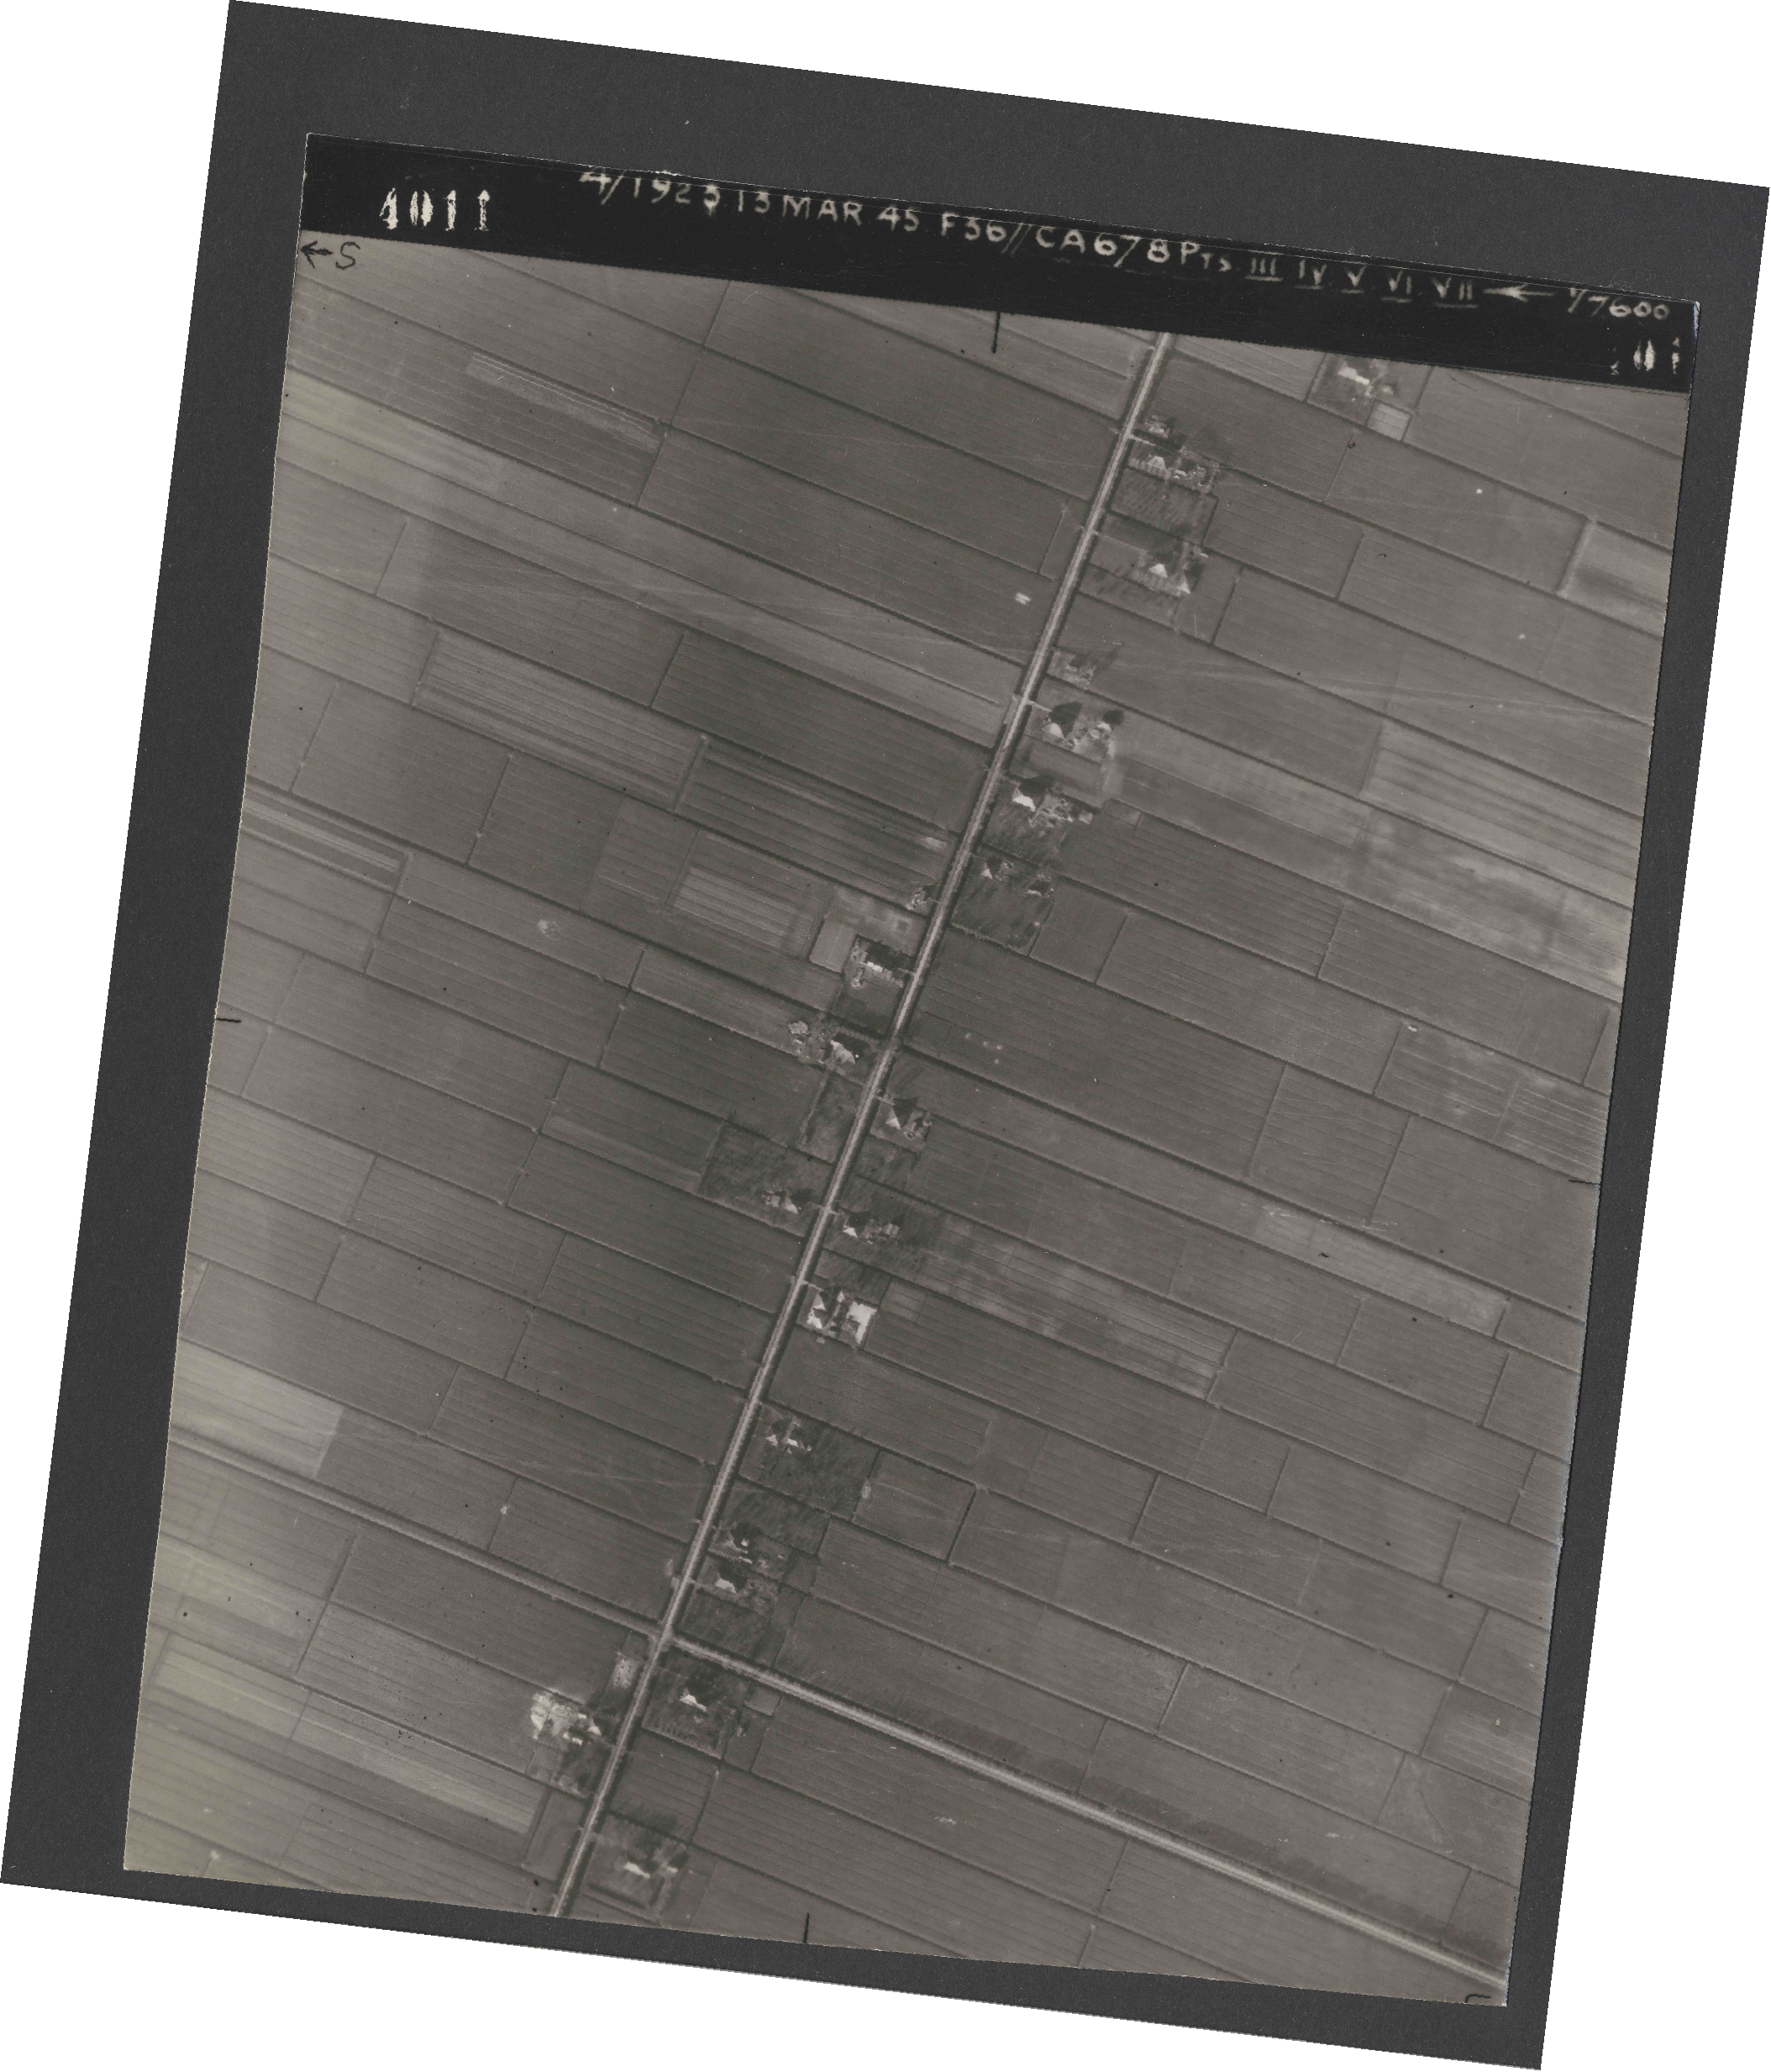 Collection RAF aerial photos 1940-1945 - flight 245, run 07, photo 4011